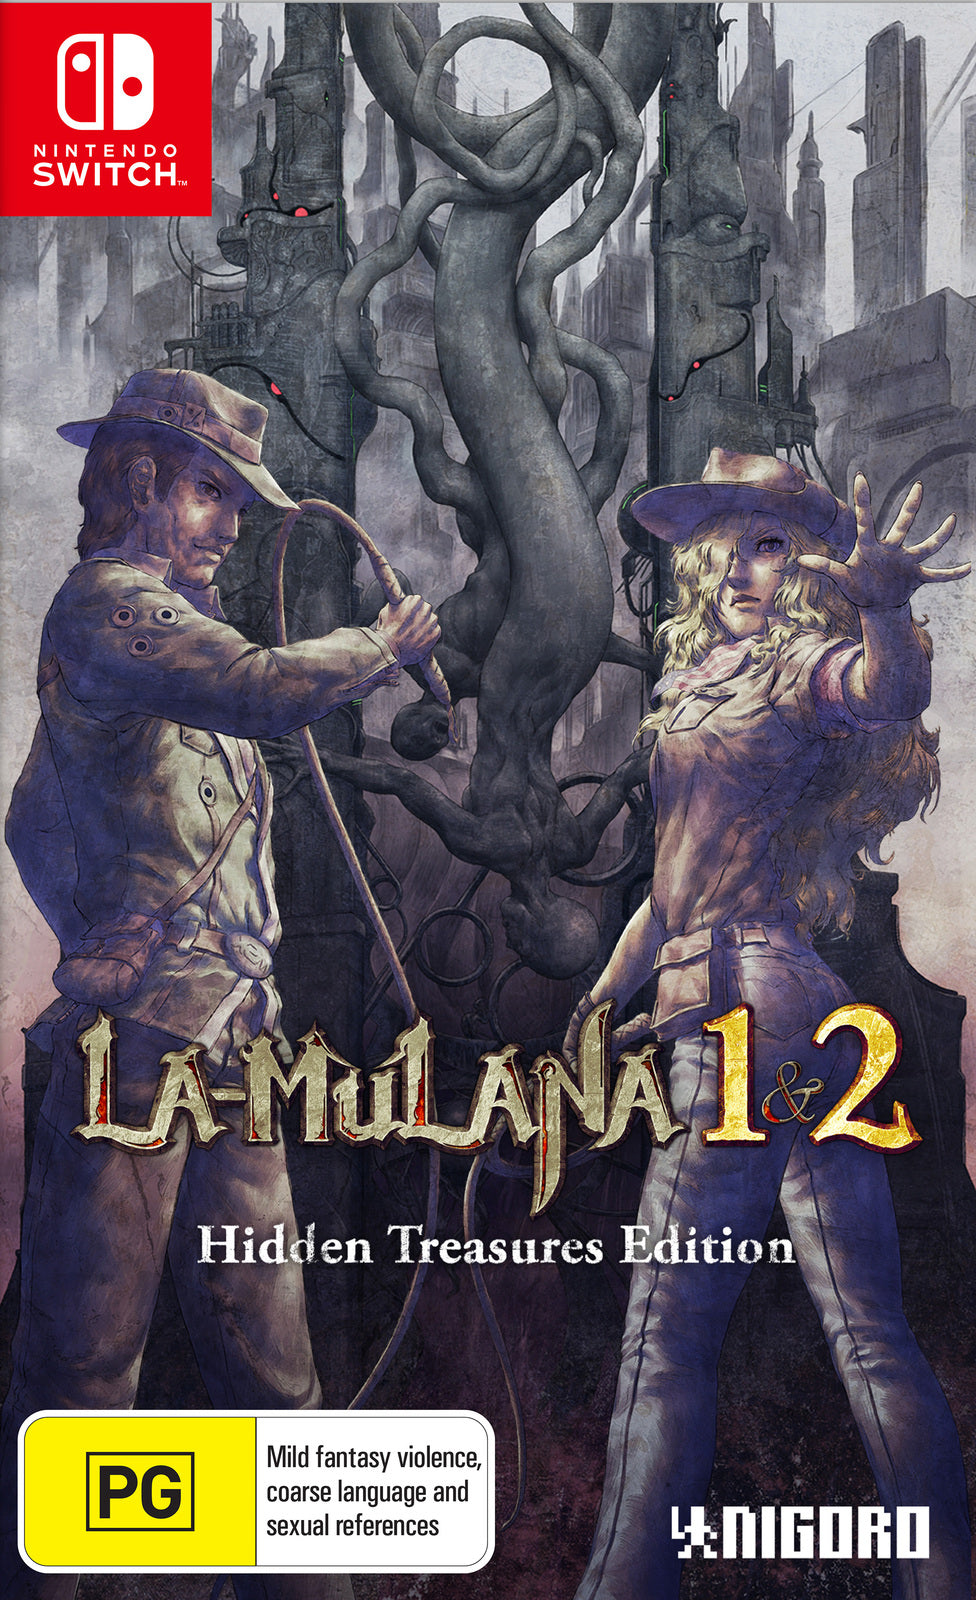 LA-Mulana 1 & 2: Hidden Treasures Edition - Nintendo Switch